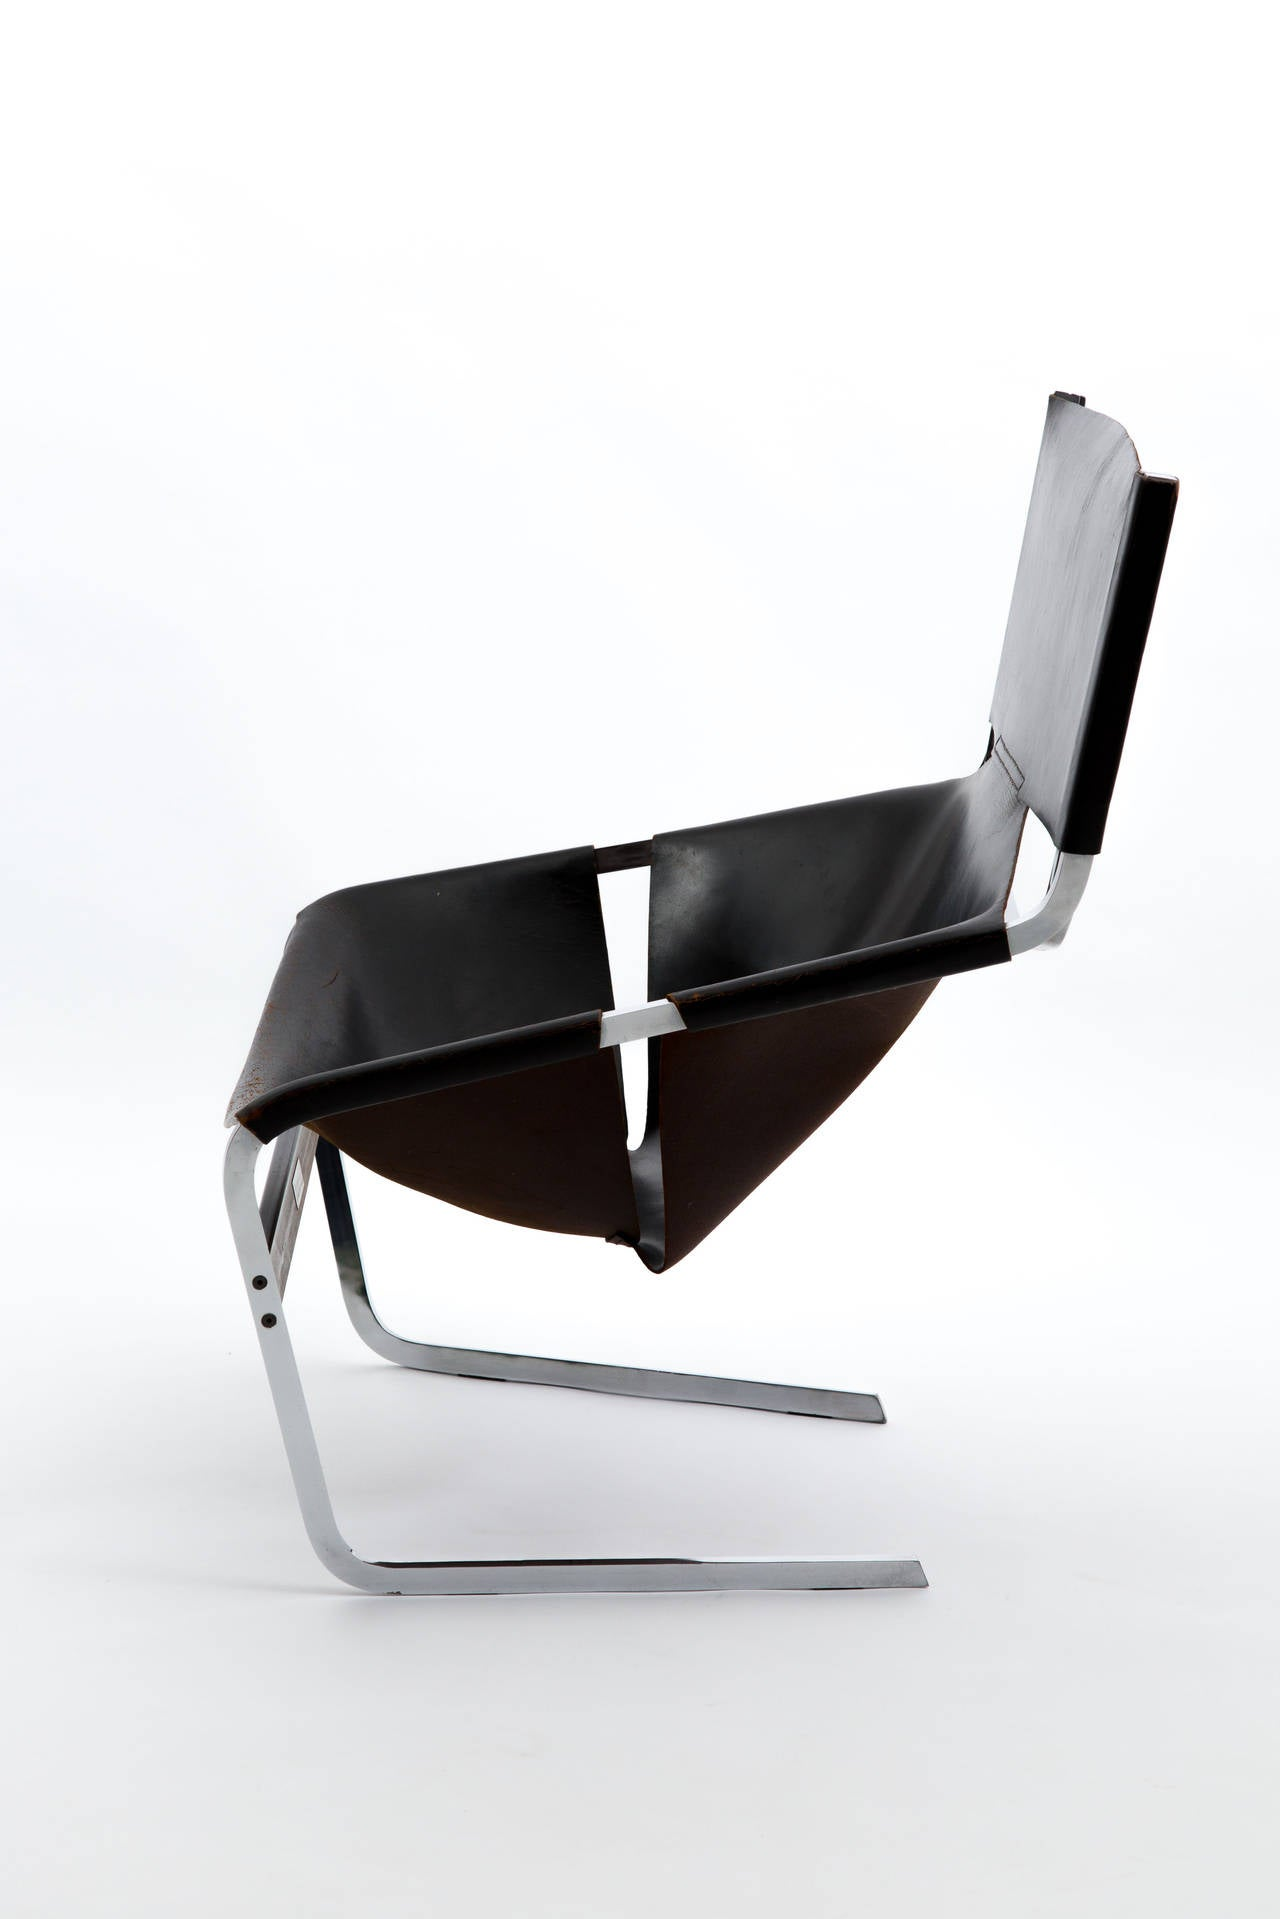 The F444 designed in 1963 by Pierre Paulin for Artifort. Bent and chrome-plated iron frame, linking rail between legs from sprayed rectangular section steel. Seat and backrest from saddle leather joined together. The chair has a metal mark with